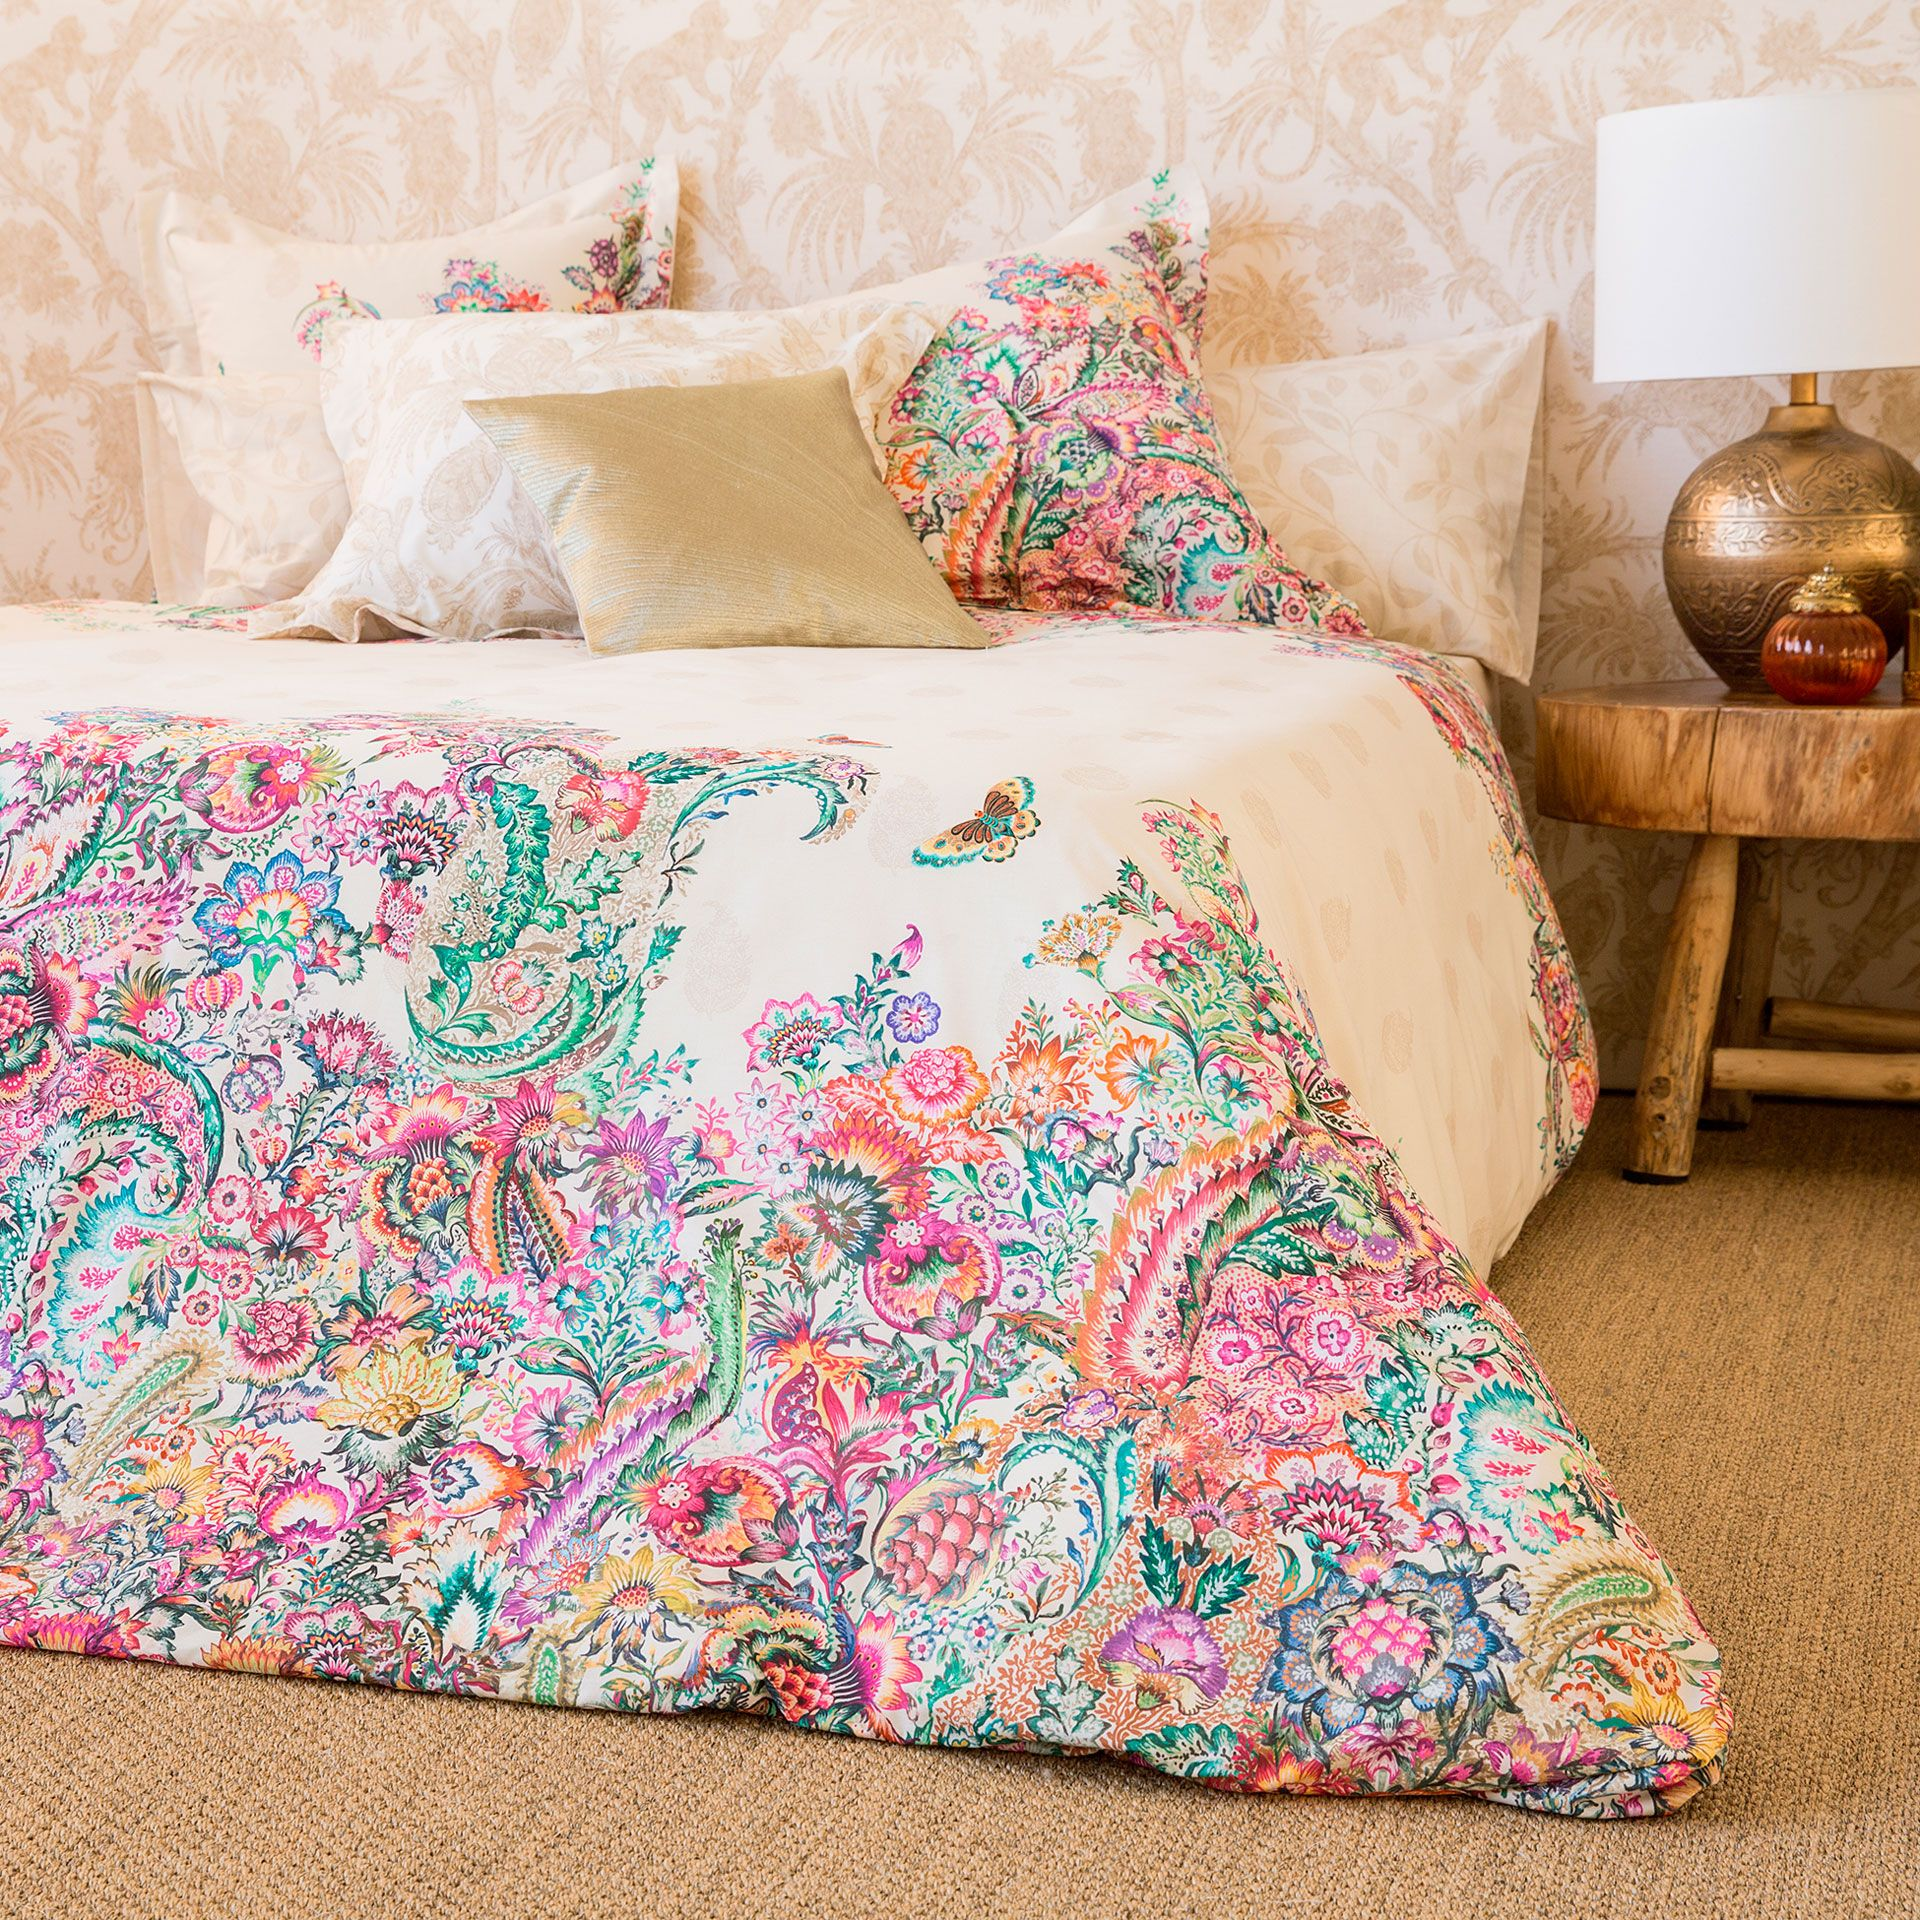 Oversized Paisley Print Bedding Bedding Bedroom Zara Home United States Of America Paisley Bedding Bed Linens Luxury Print Bedding